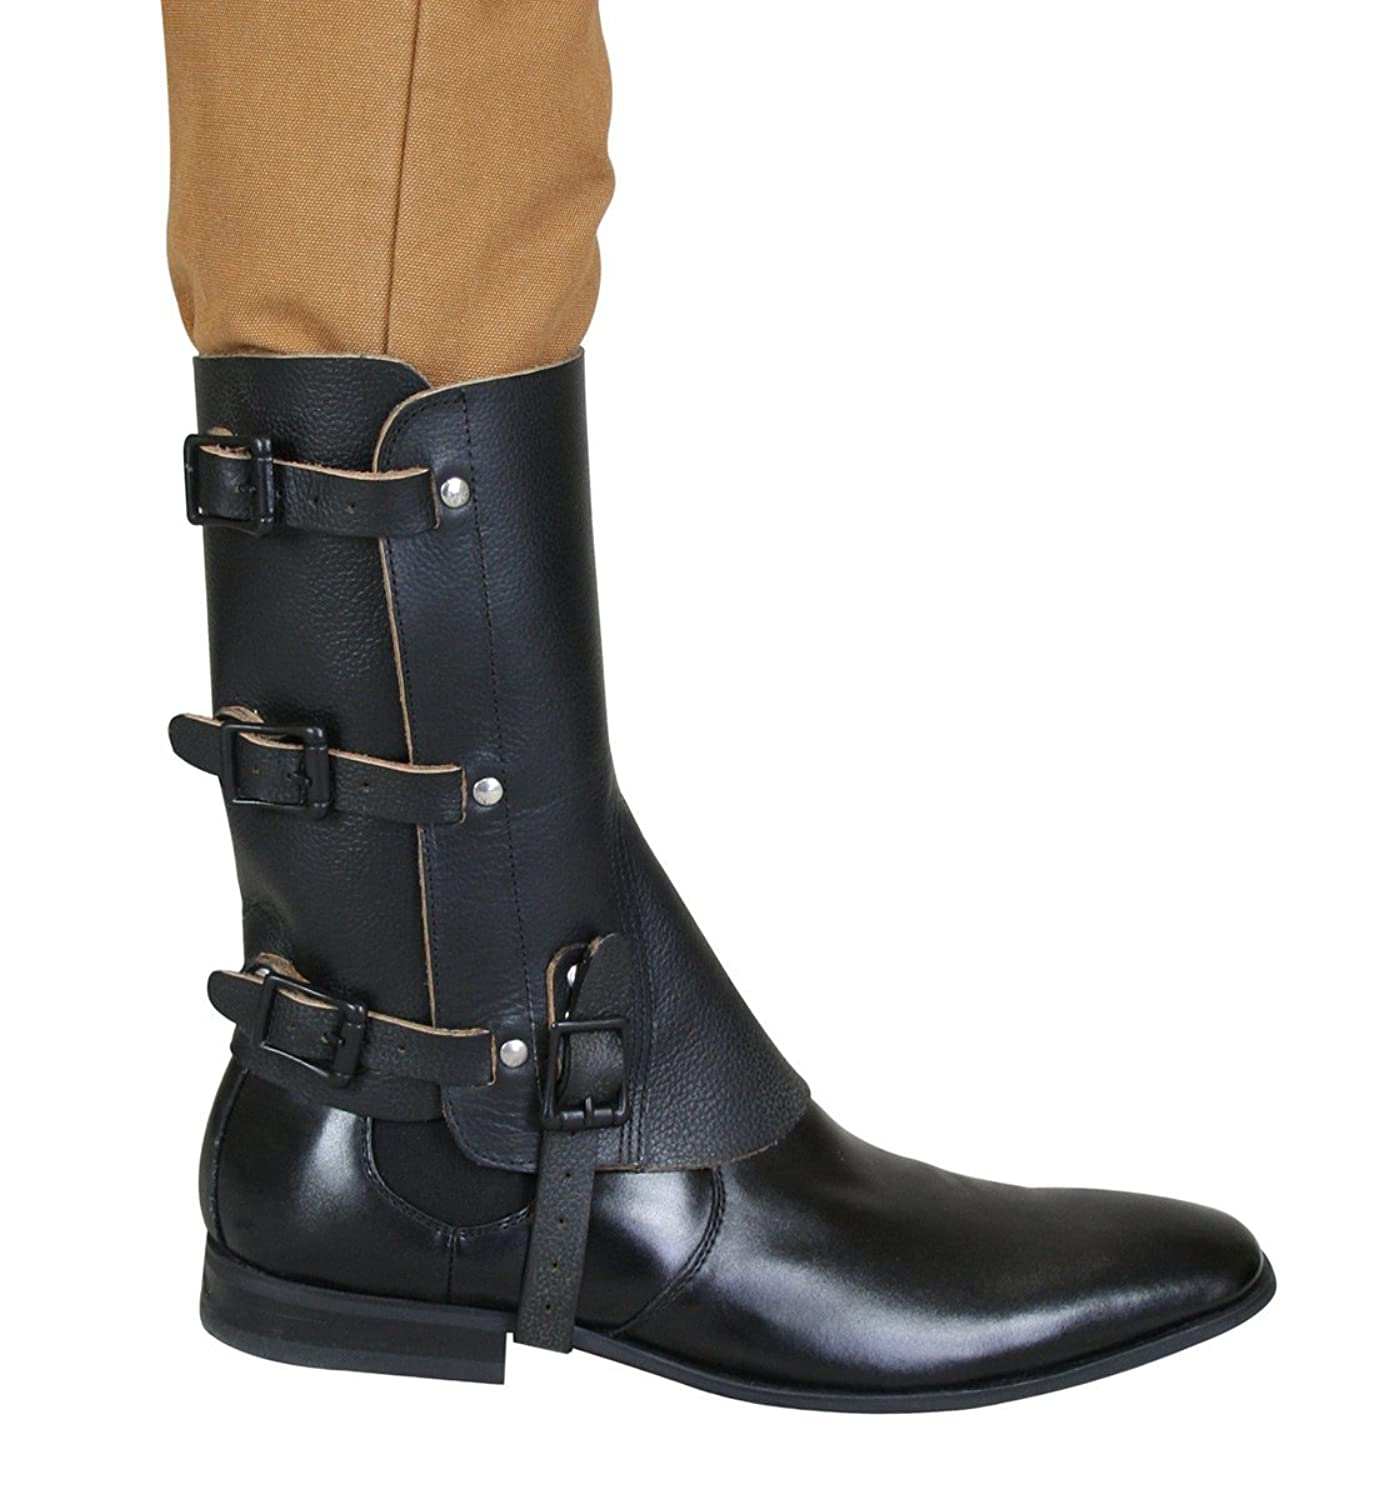 Steampunk Boots & Shoes, Heels & Flats Historical Emporium Mens Deluxe Leather Military Gaiters $49.95 AT vintagedancer.com